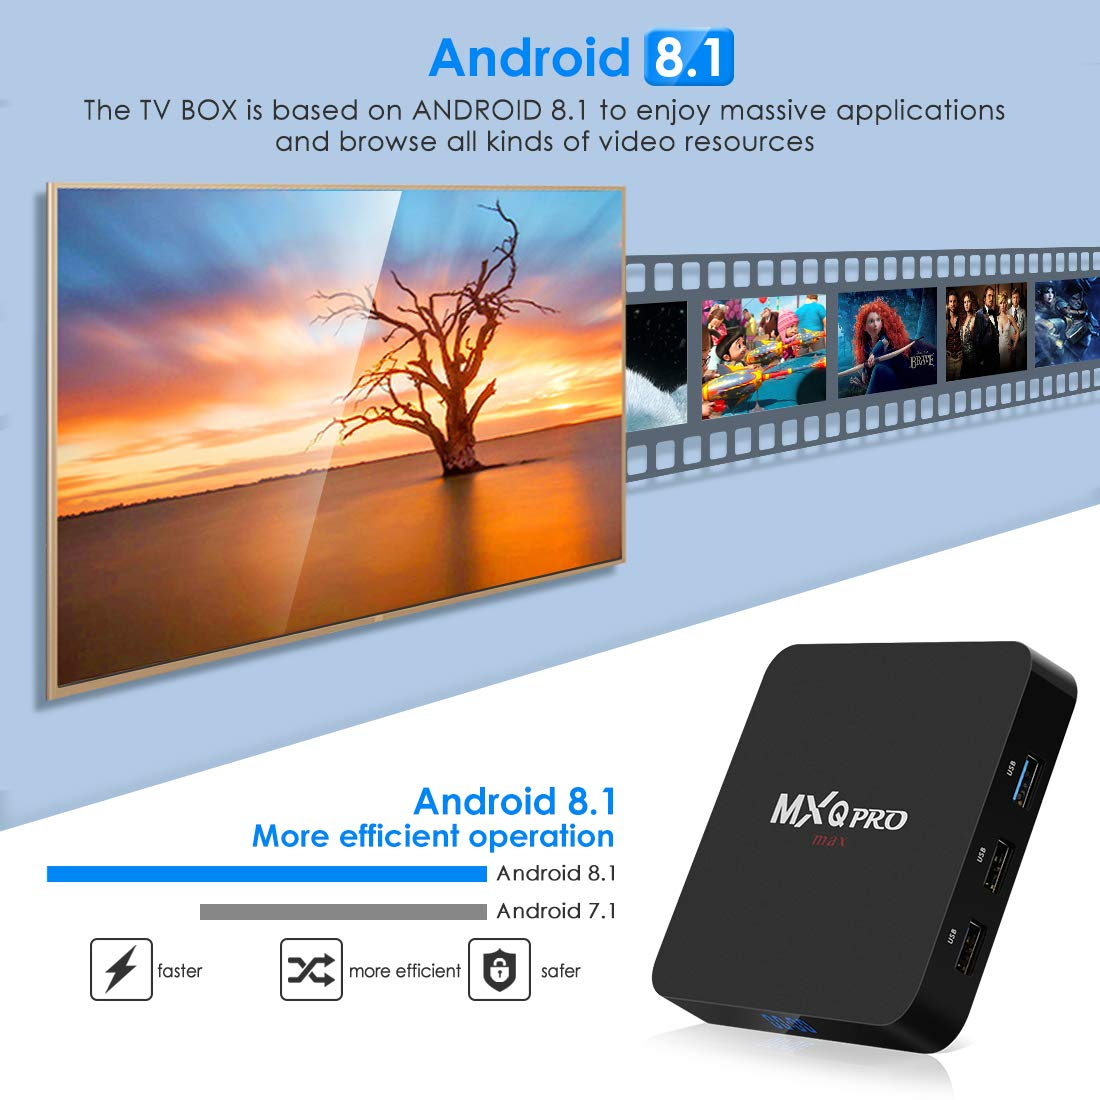 Android 9 0 TV Box, Leelbox 2019 Update Android TV Box 4GB RAM 32GB ROM  Quad-Core RK3328 Android Box Built-in 2 4G WiFi Supports BT 4 1/3D Movie/4K